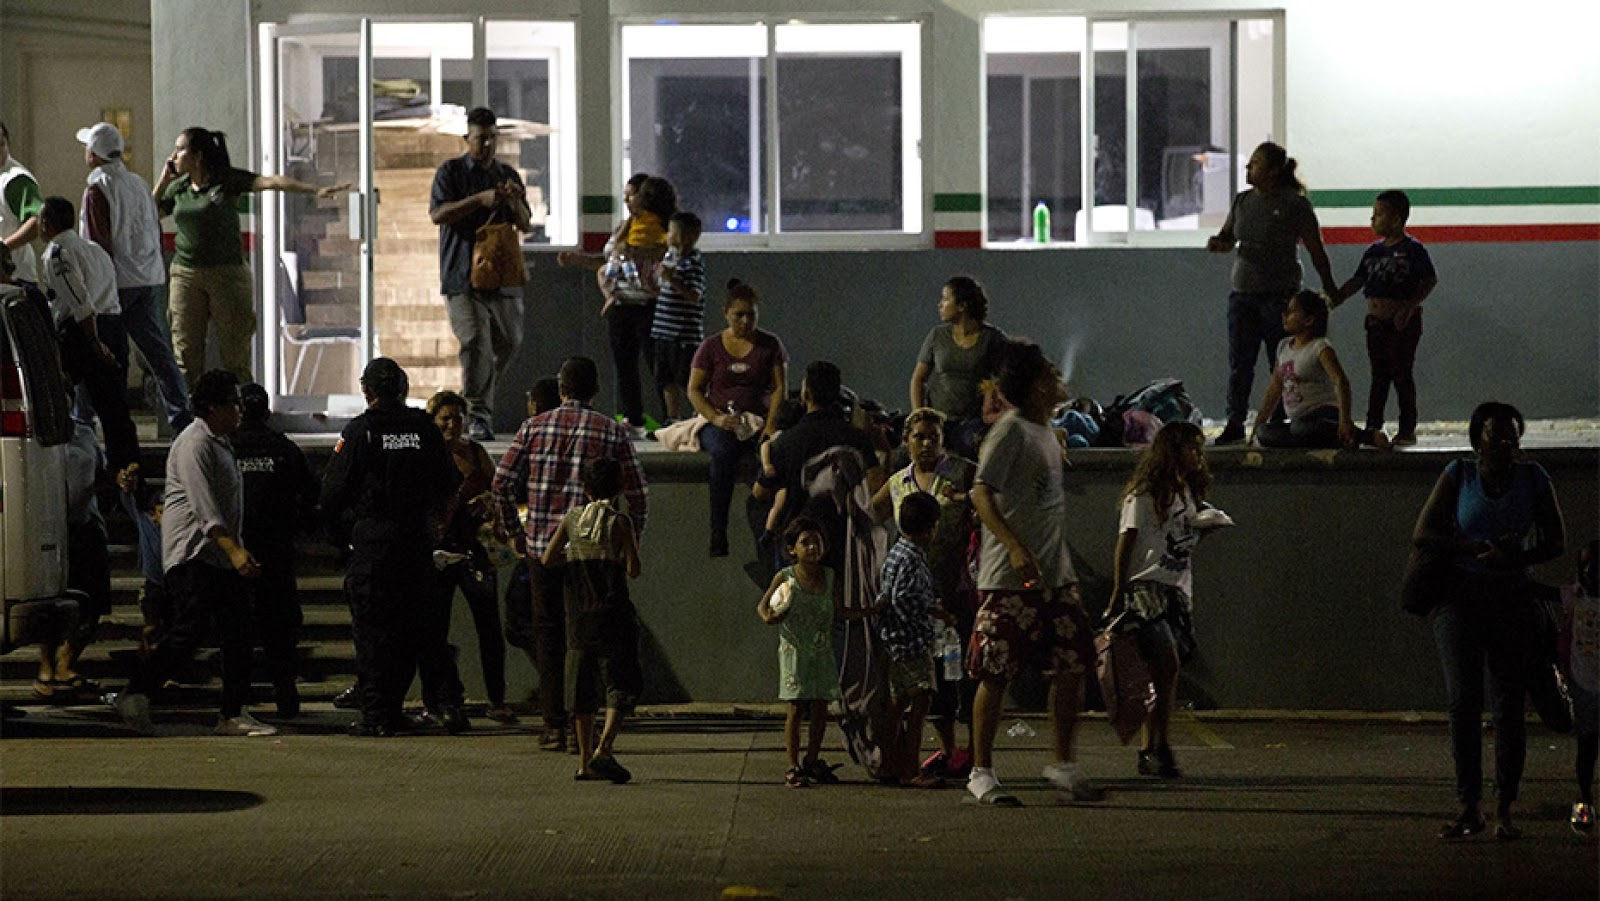 Migrants wait for their transfer from an immigration detention center in Tapachula, Chiapas state, Mexico, on Thursday. Photo:  AP via Fox News